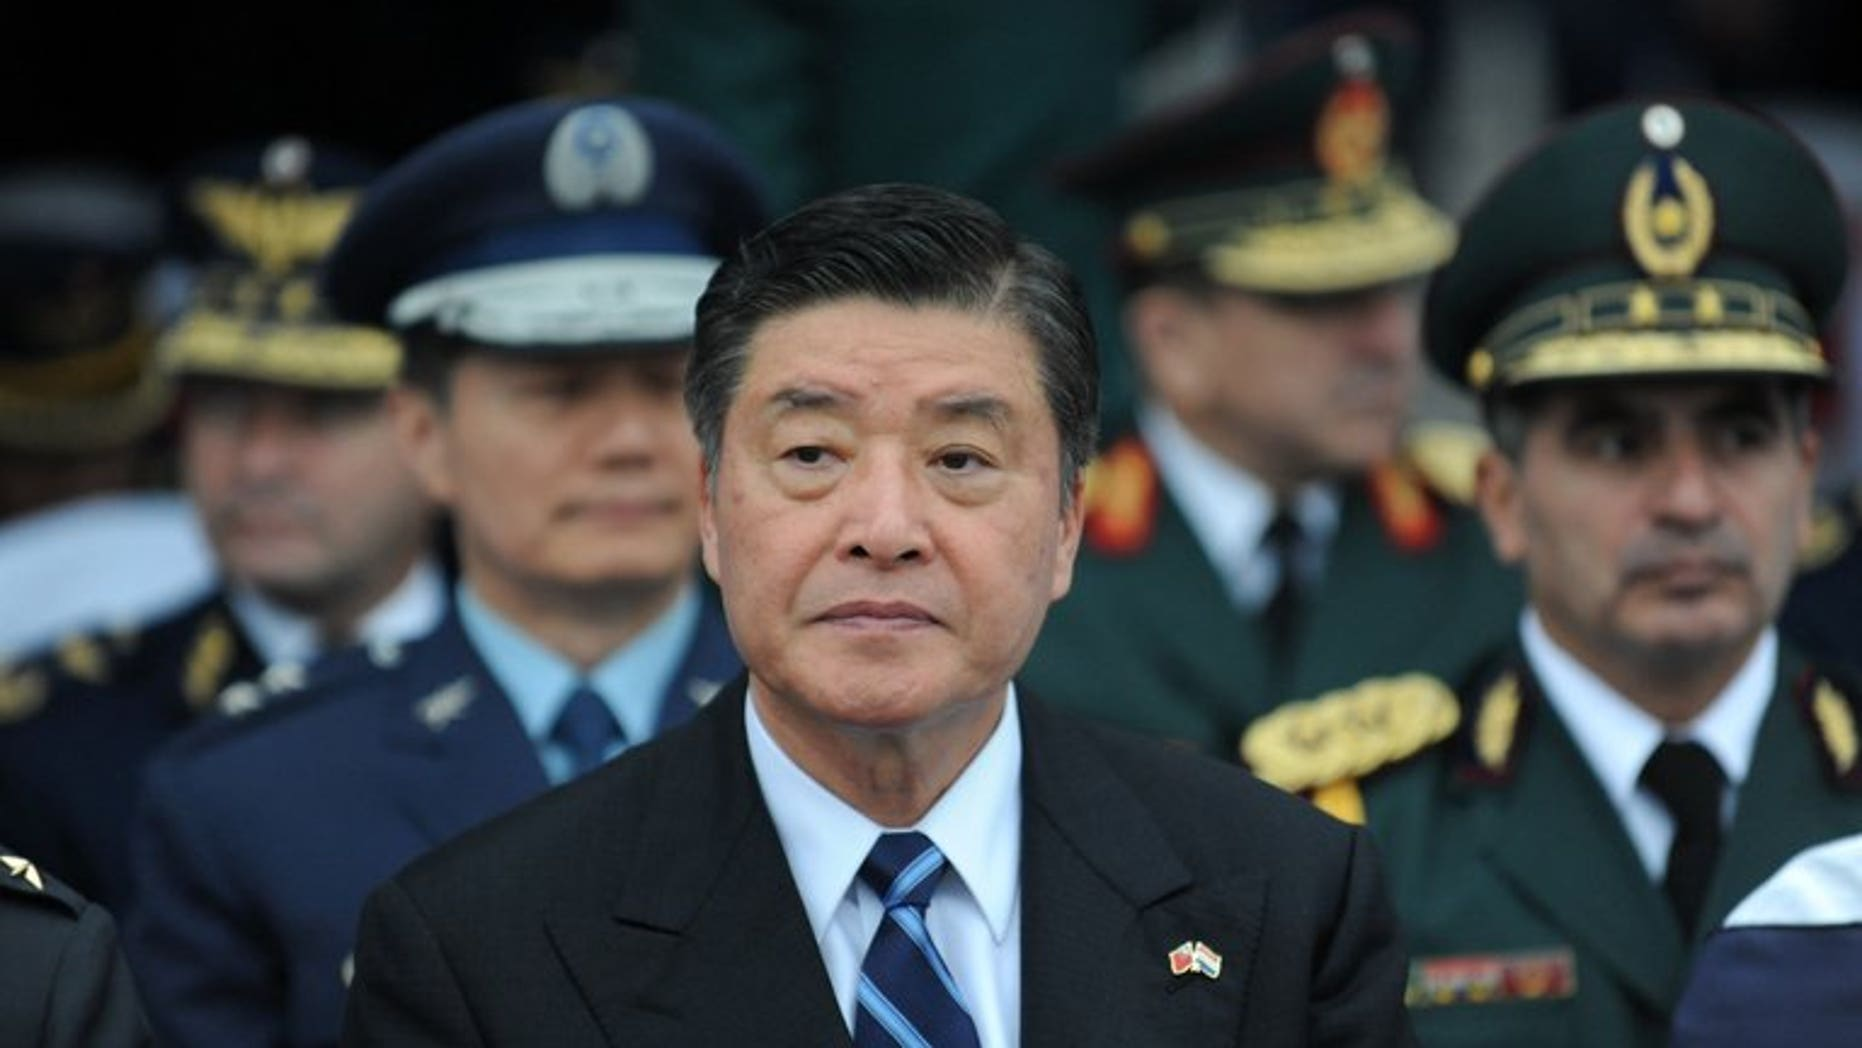 This file photo shows Taiwan's Defence Minister Kao Hua-chu during his recent visit to Paraguay, on July 9, 2013. Kao has resigned, Premier Jiang Yi-huah said on Monday, after the death of a corporal who was allegedly abused by the military in a case that sparked outrage across the island.